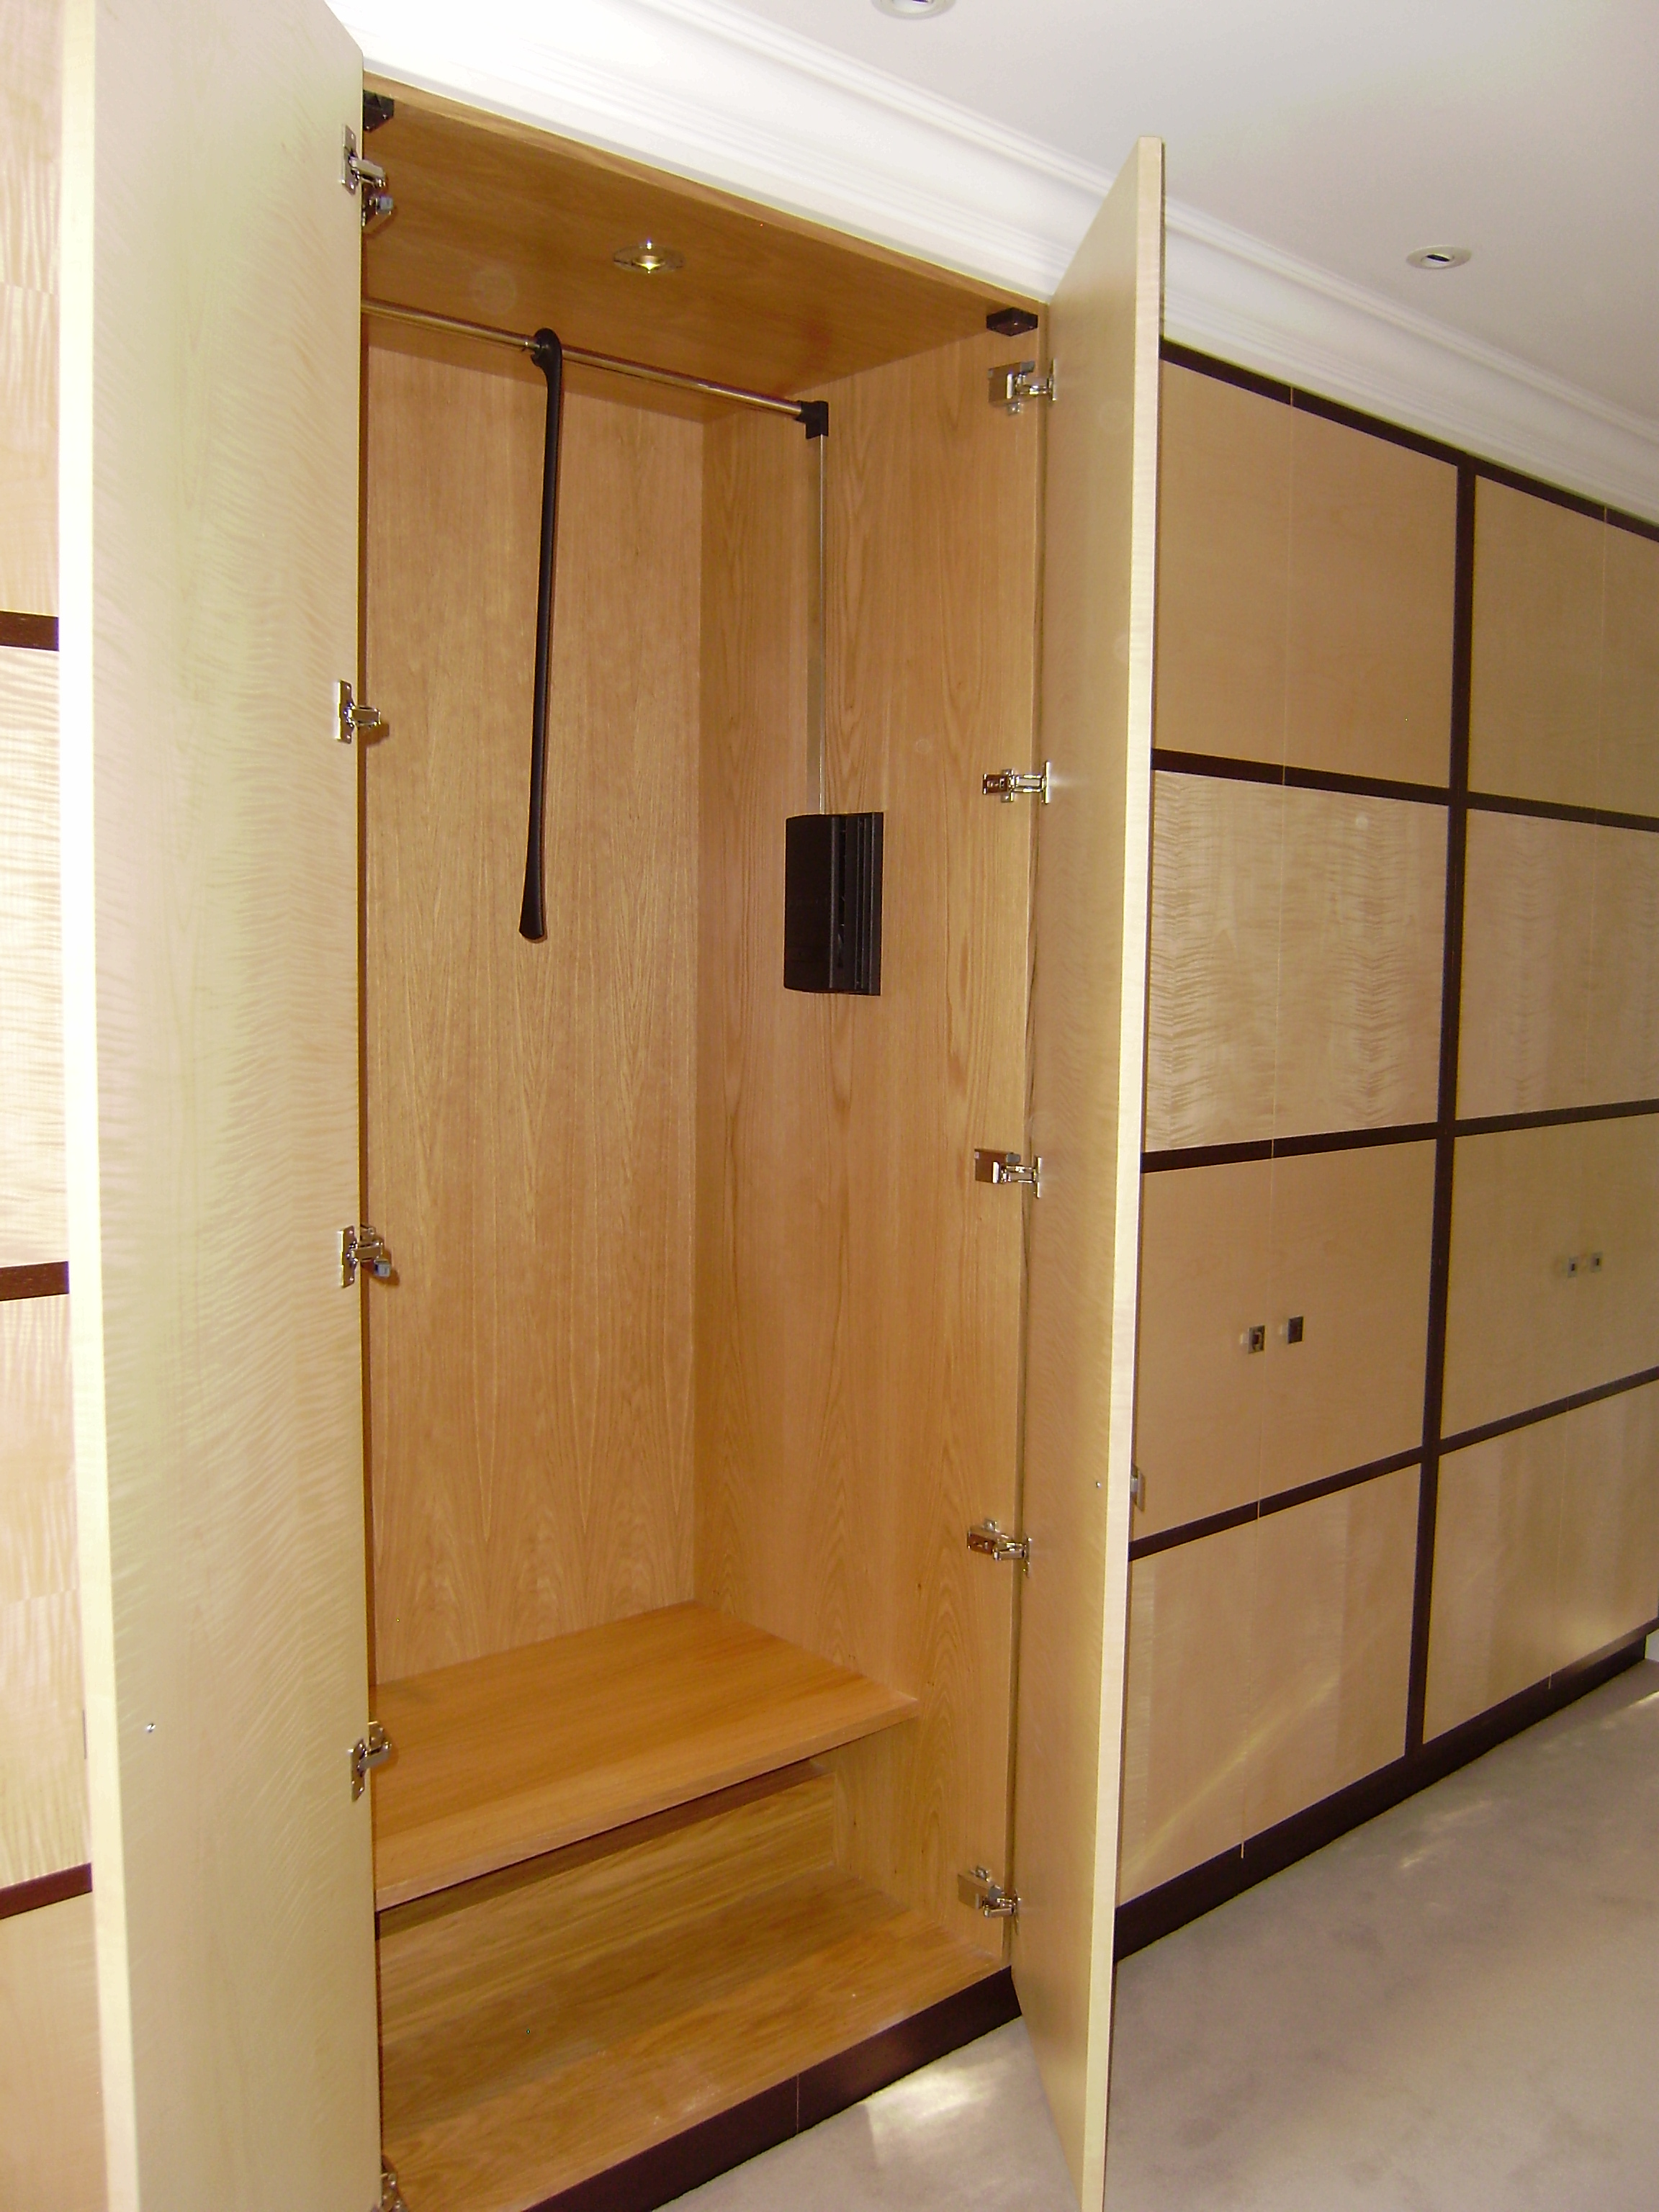 Decorative - These wardrobes have interiors of oak and doors in sycamore and wenge.